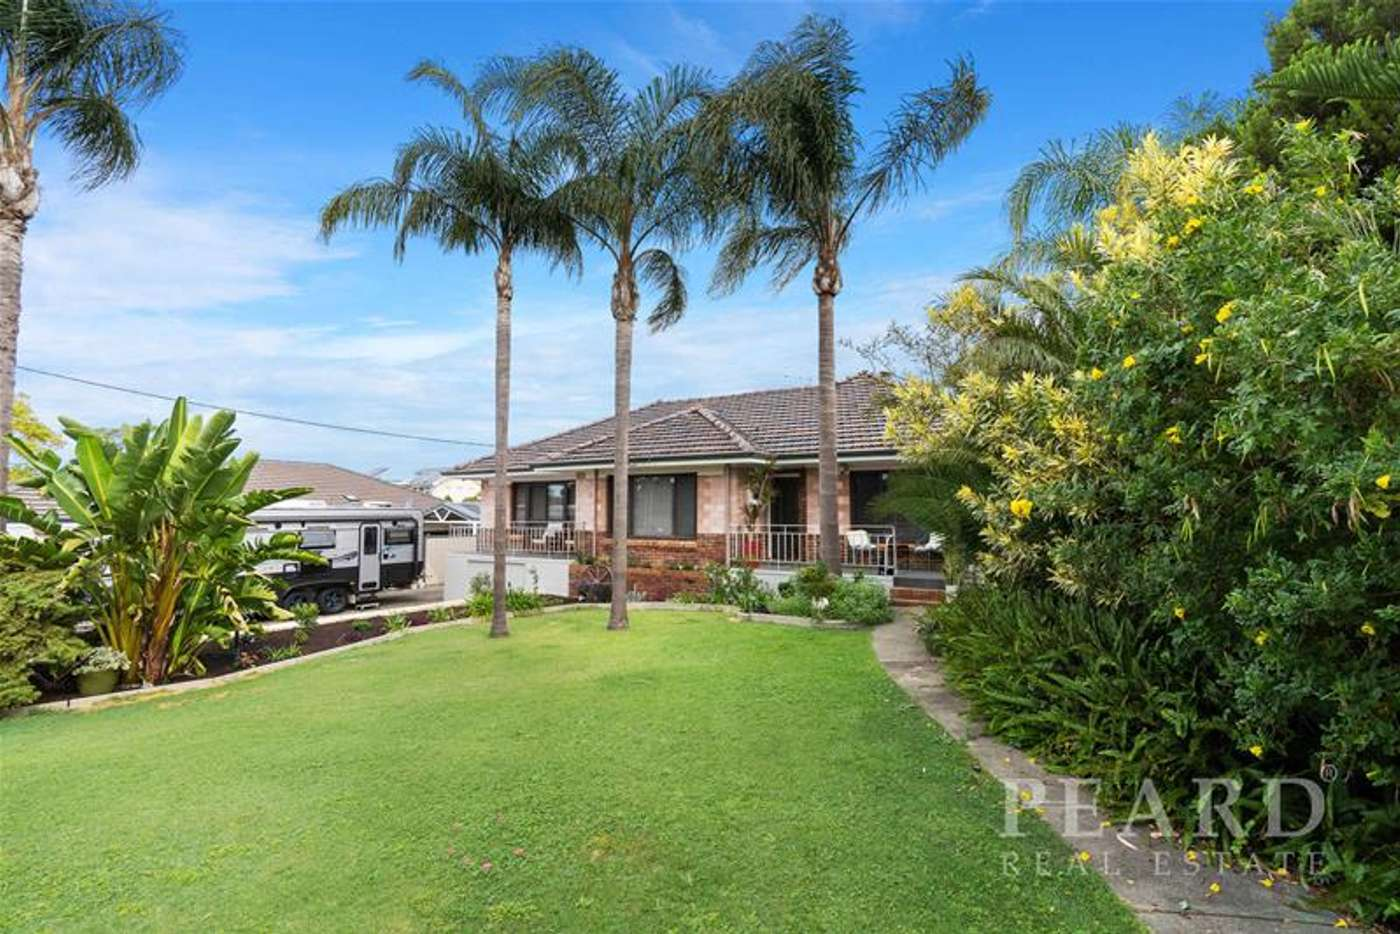 Main view of Homely house listing, 41 Beaconsfield Street, St James WA 6102